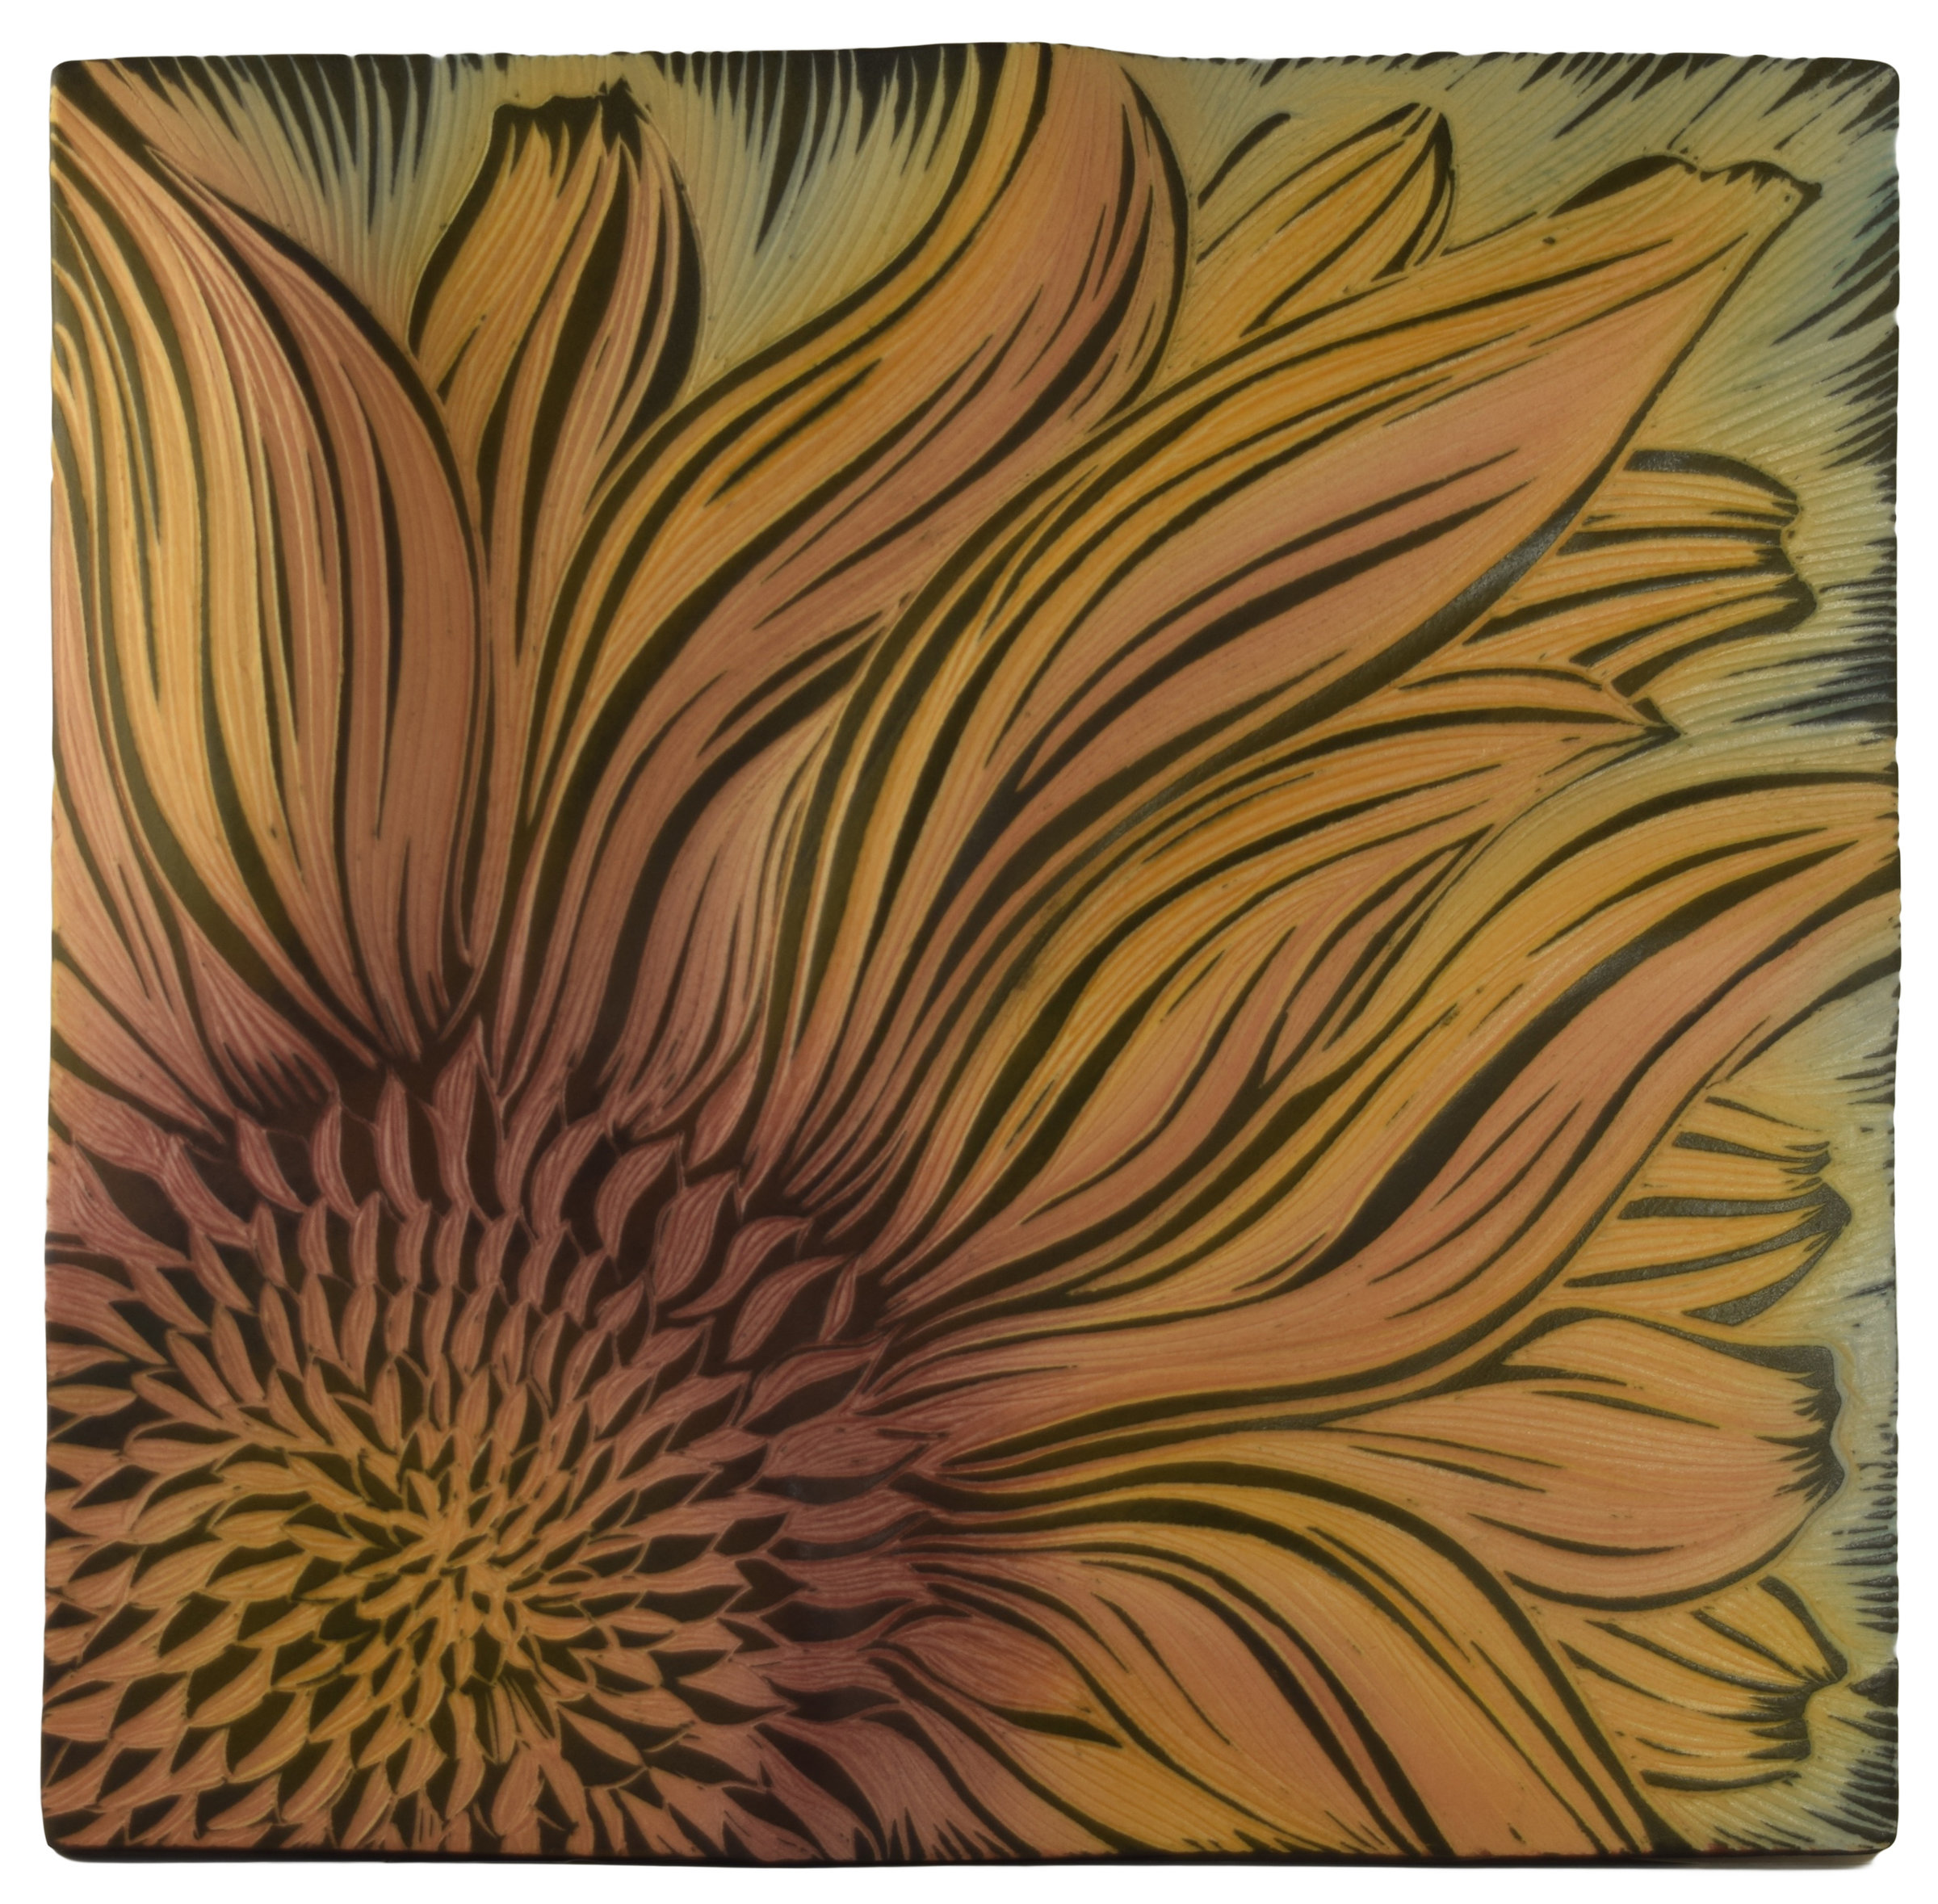 Artful Home Sunflower By Natalie Blake Ceramic Wall Sculpture Artful Home